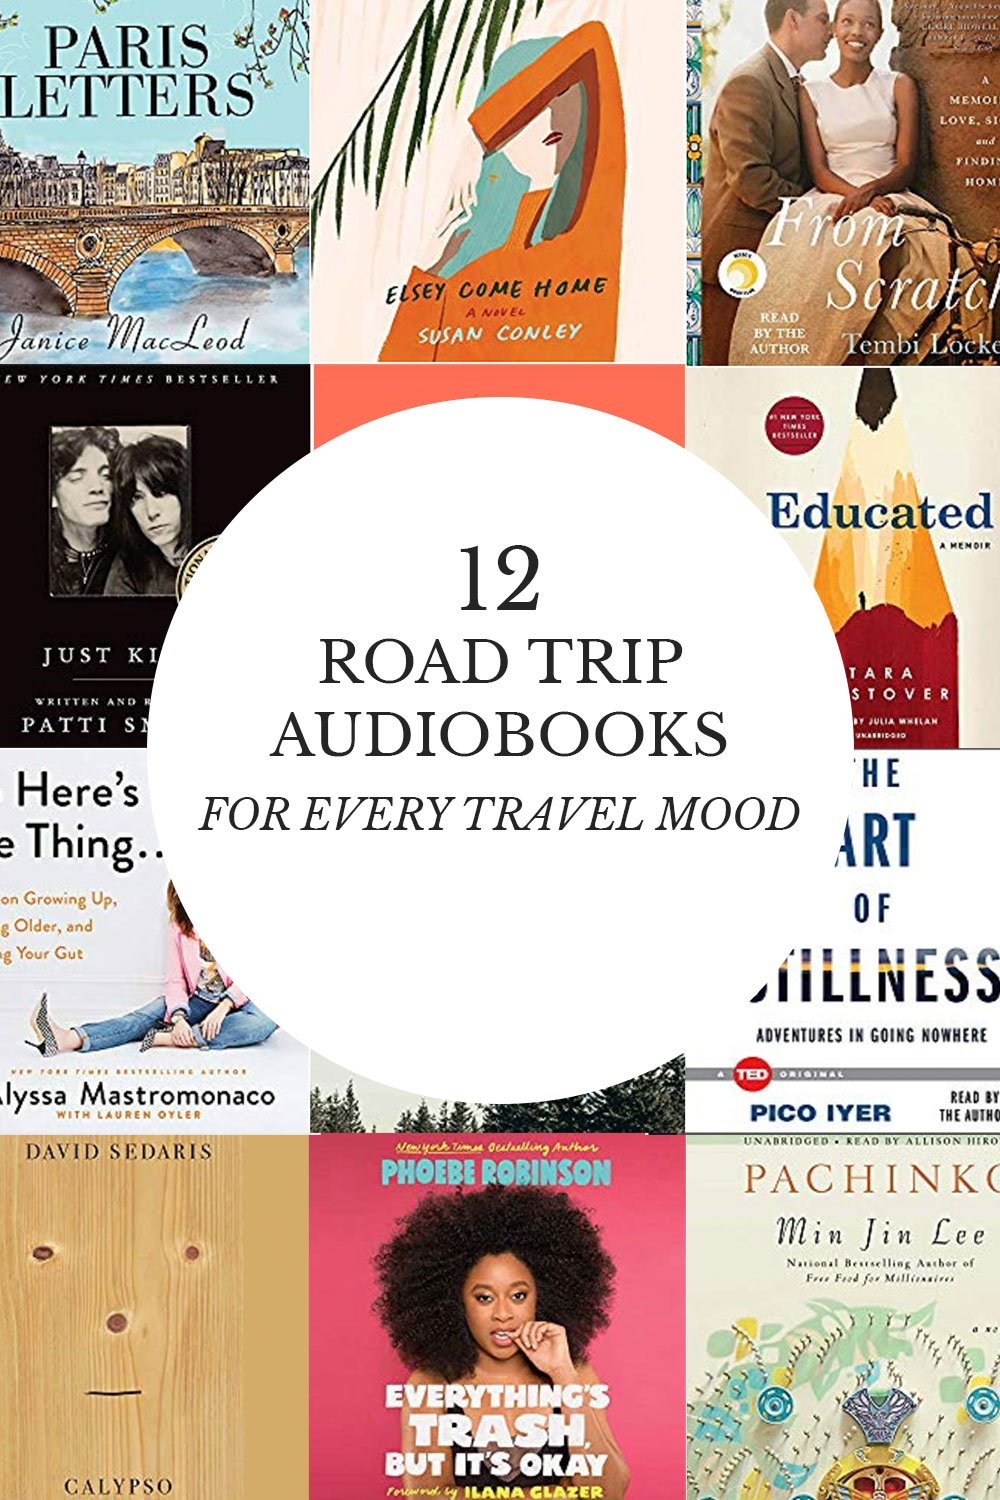 These audiobooks for roadtrips are bound to turn your car journey into a voyage. From fiction audiobooks to funny and self-help audiobooks, there's something for every kind of trip this summer and beyond. #audiobooks #roadtrips #bookrecommendations